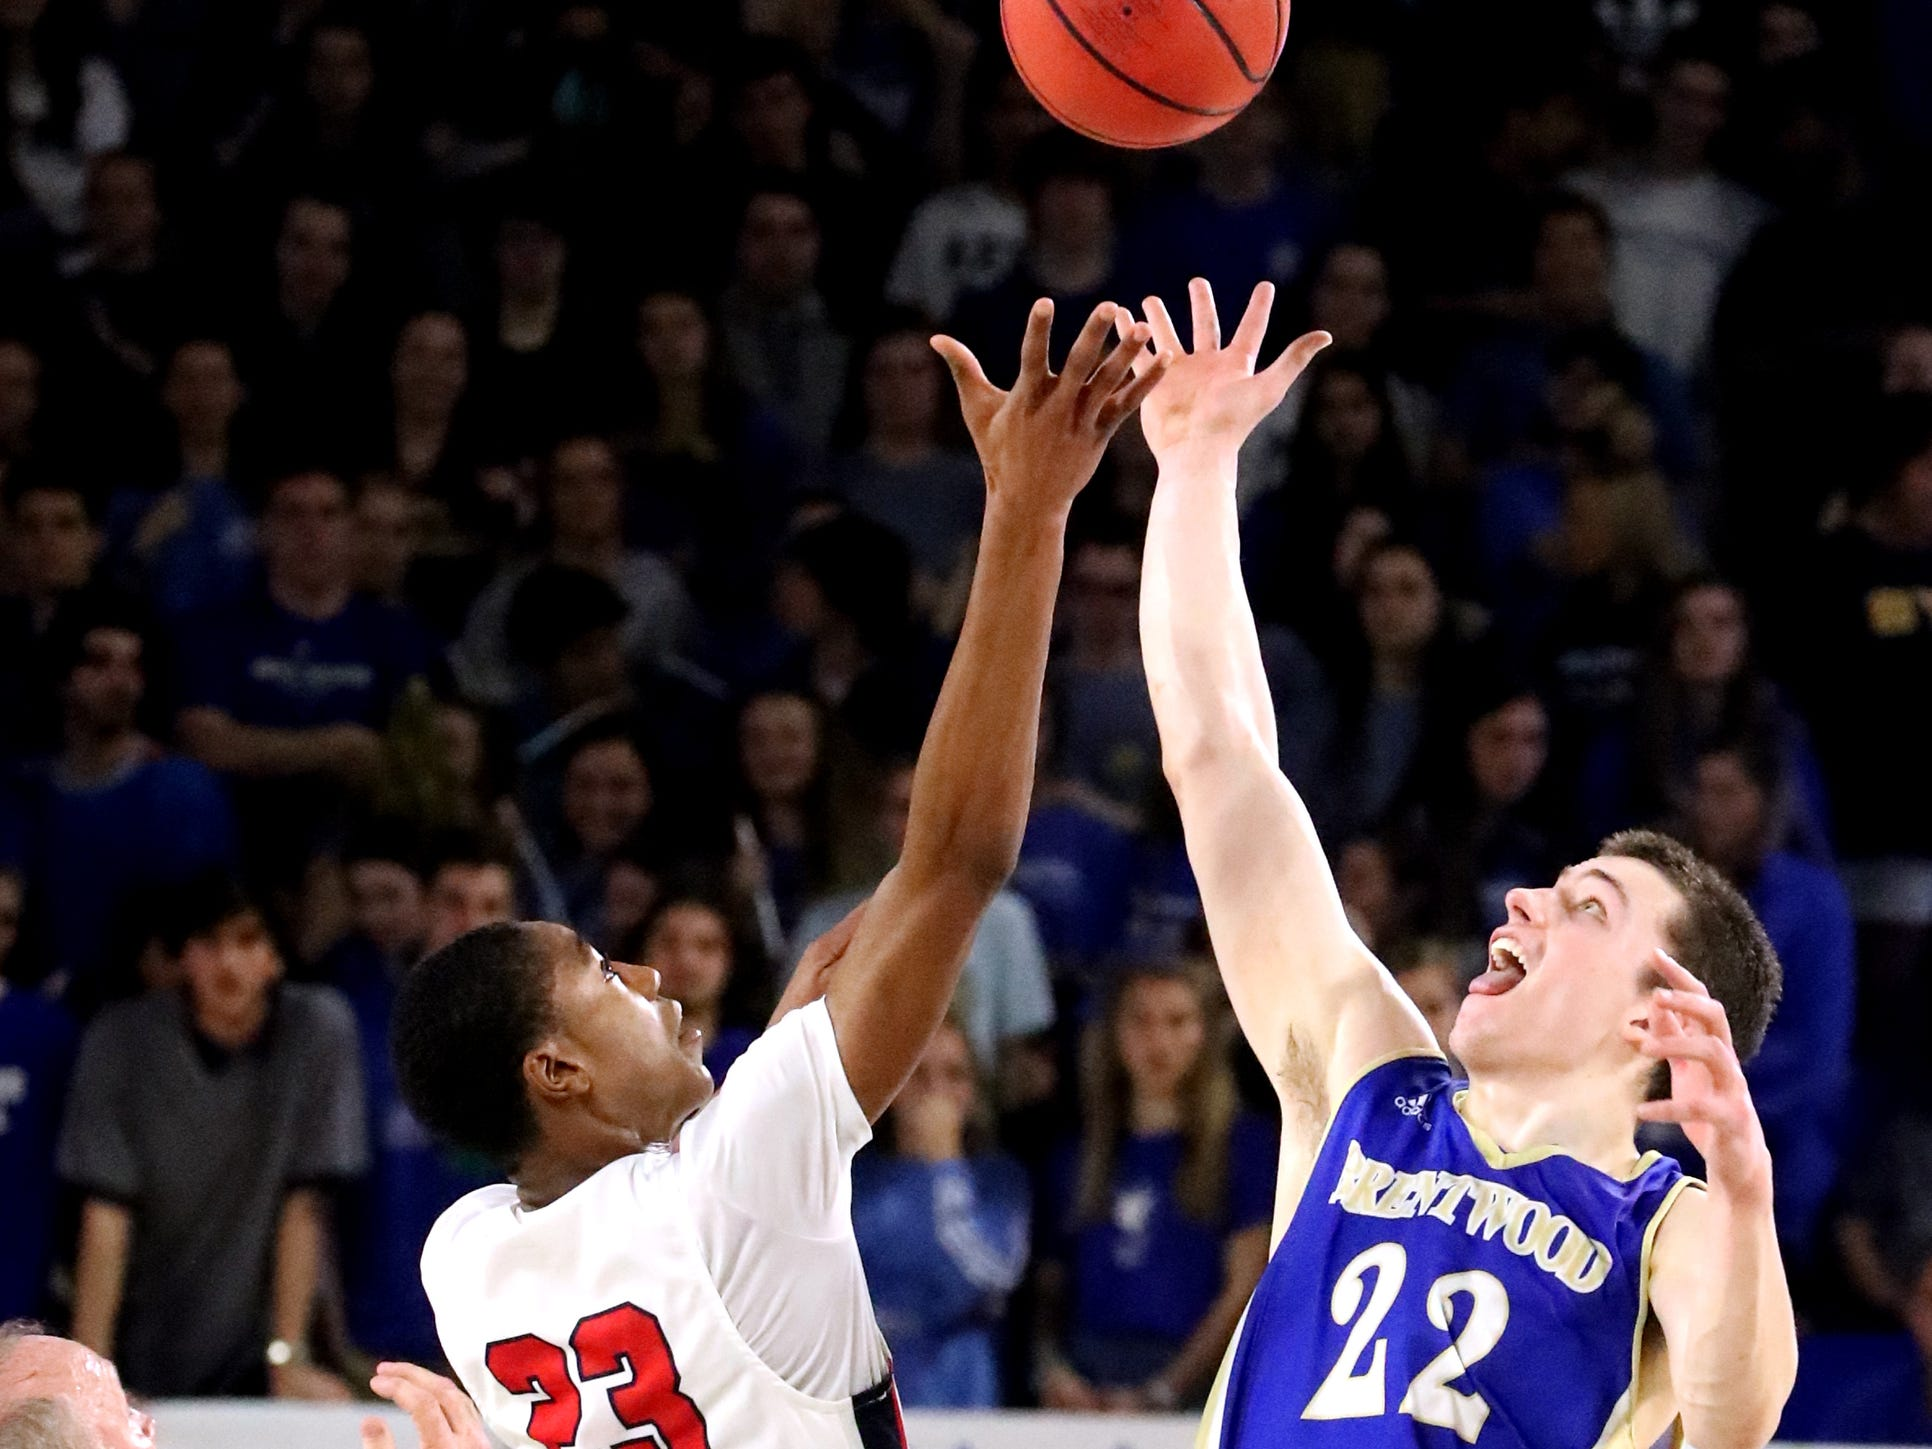 Oakland's Dorian Anderson (23) and Brentwood's Harry Lackey (22) jump the ball to start the overtime period of the quarterfinal round of the TSSAA Class AAA Boys State Tournament, on Thursday, March 14, 2019, at Murphy Center in Murfreesboro, Tenn.